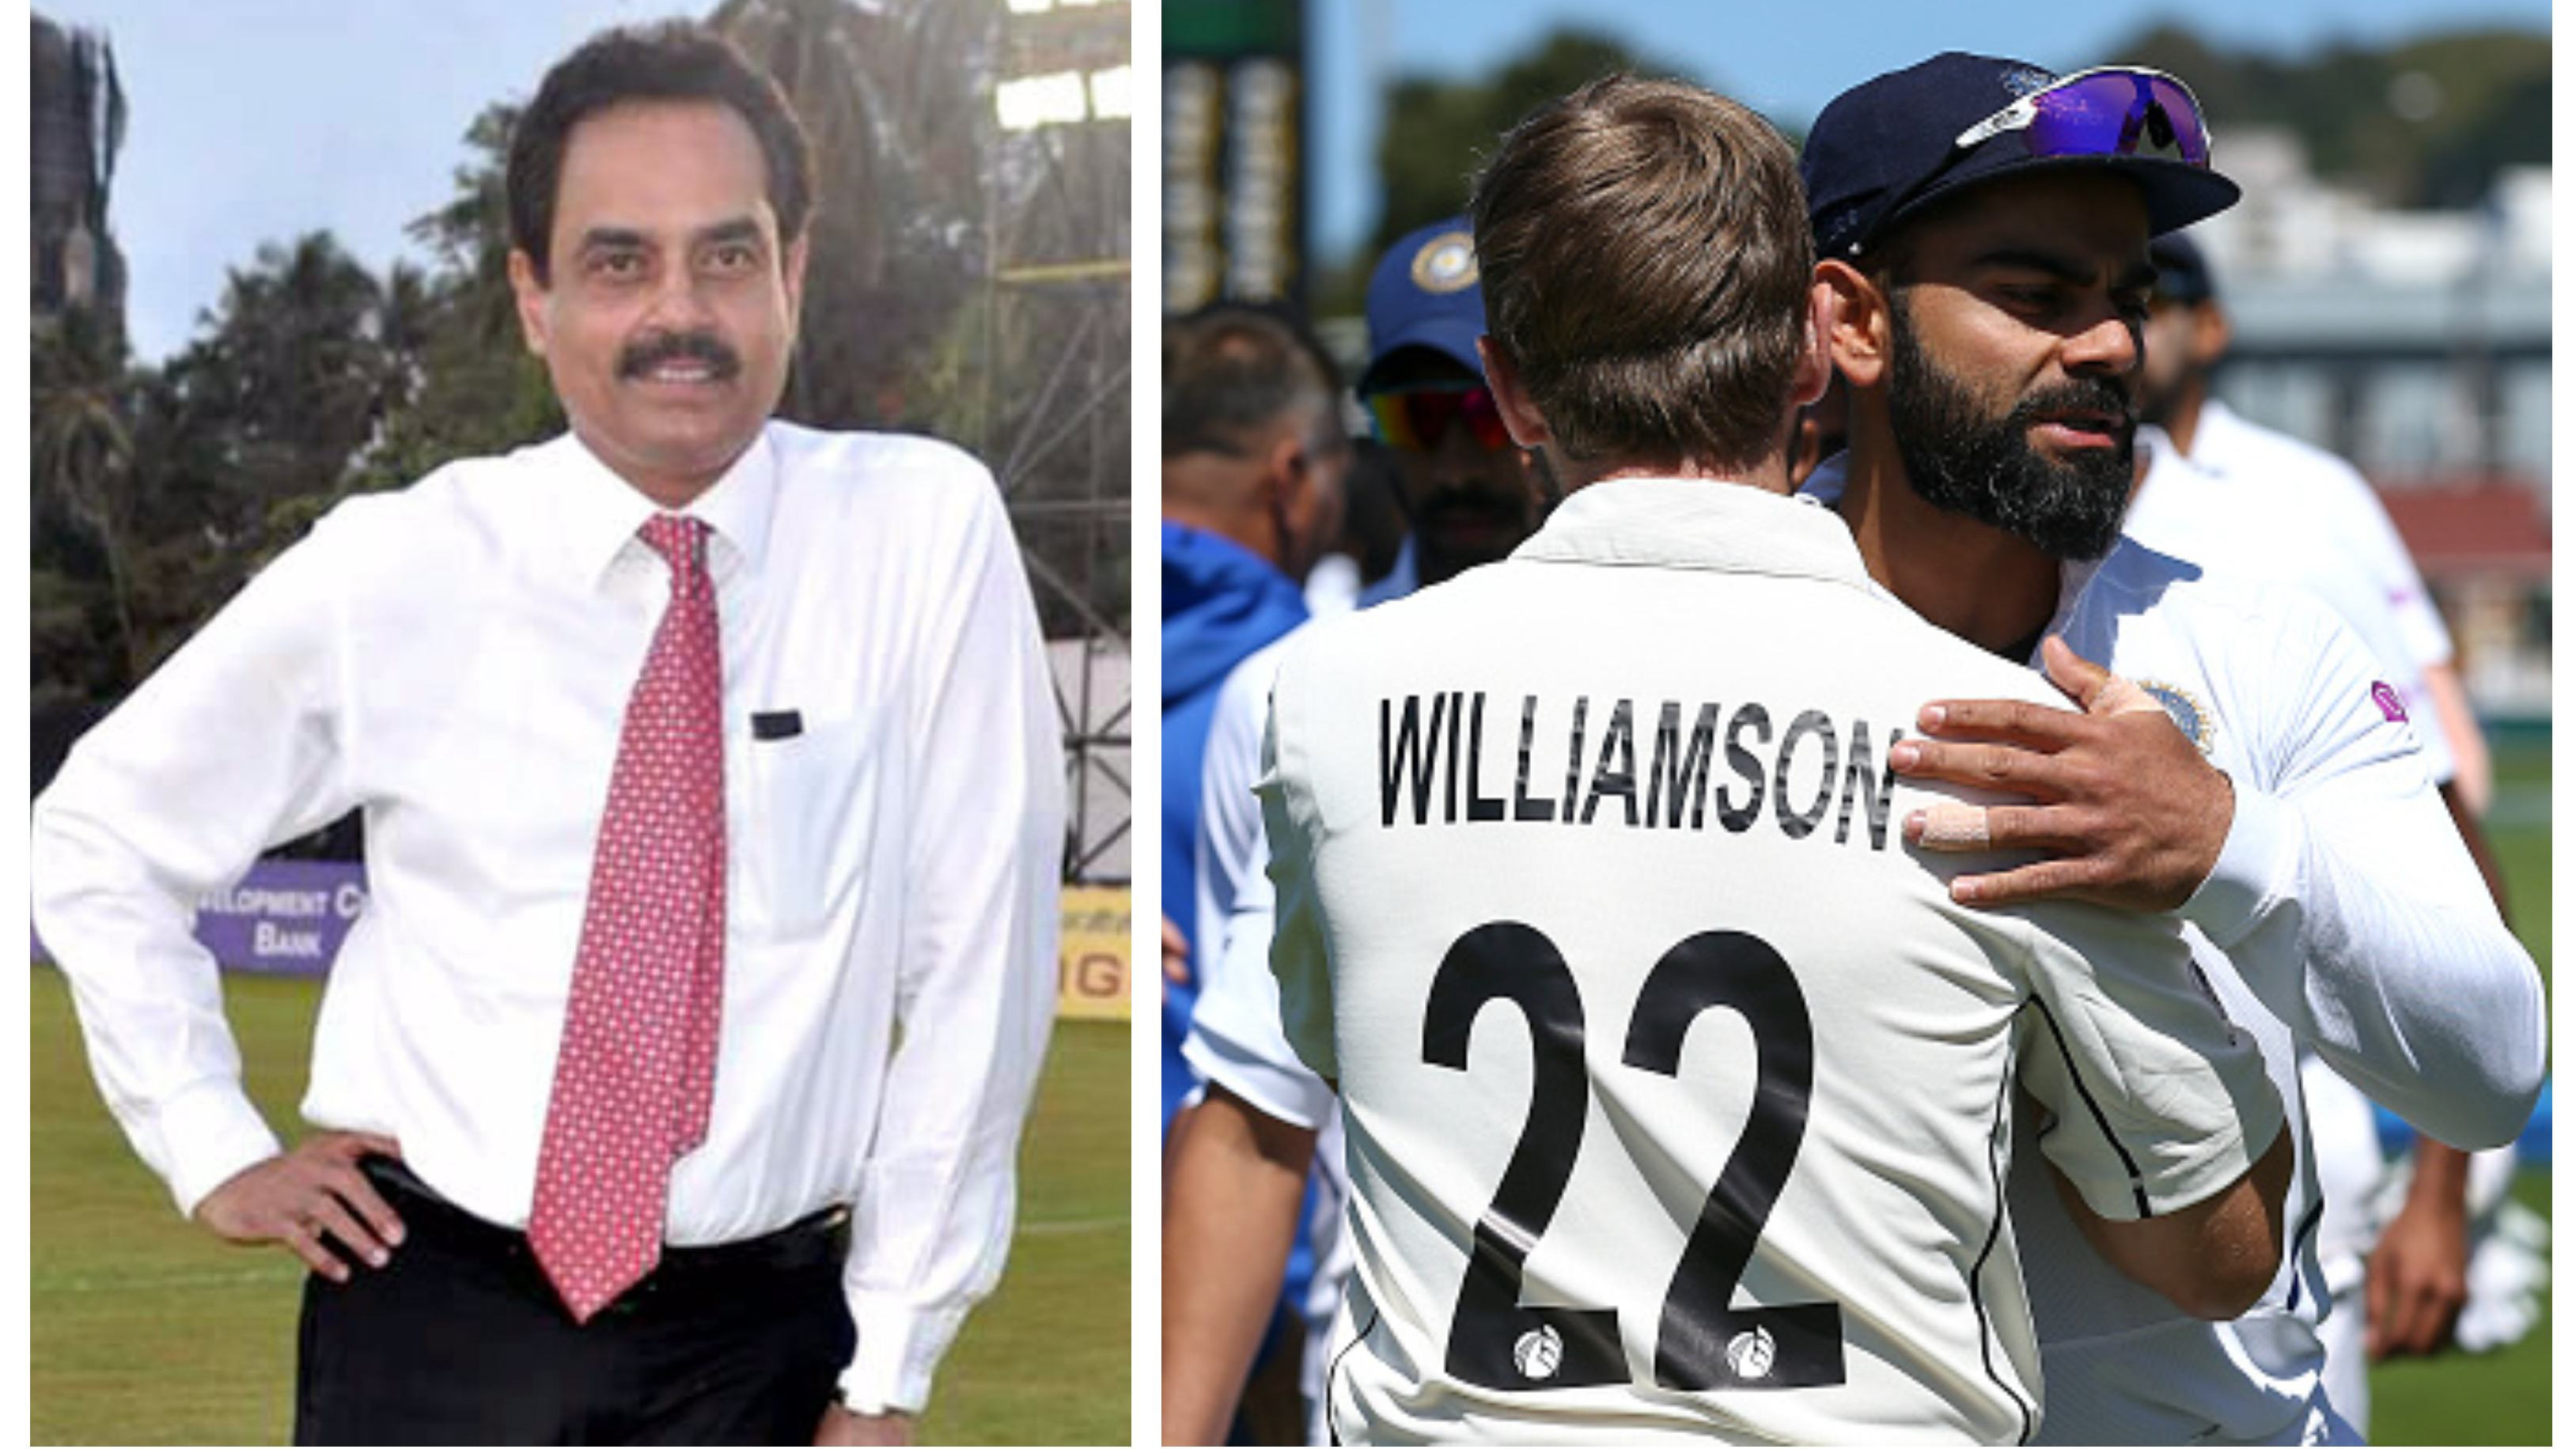 WTC 2021 Final: 'India is a better team, New Zealand will have advantage preparation-wise', Dilip Vengsarkar